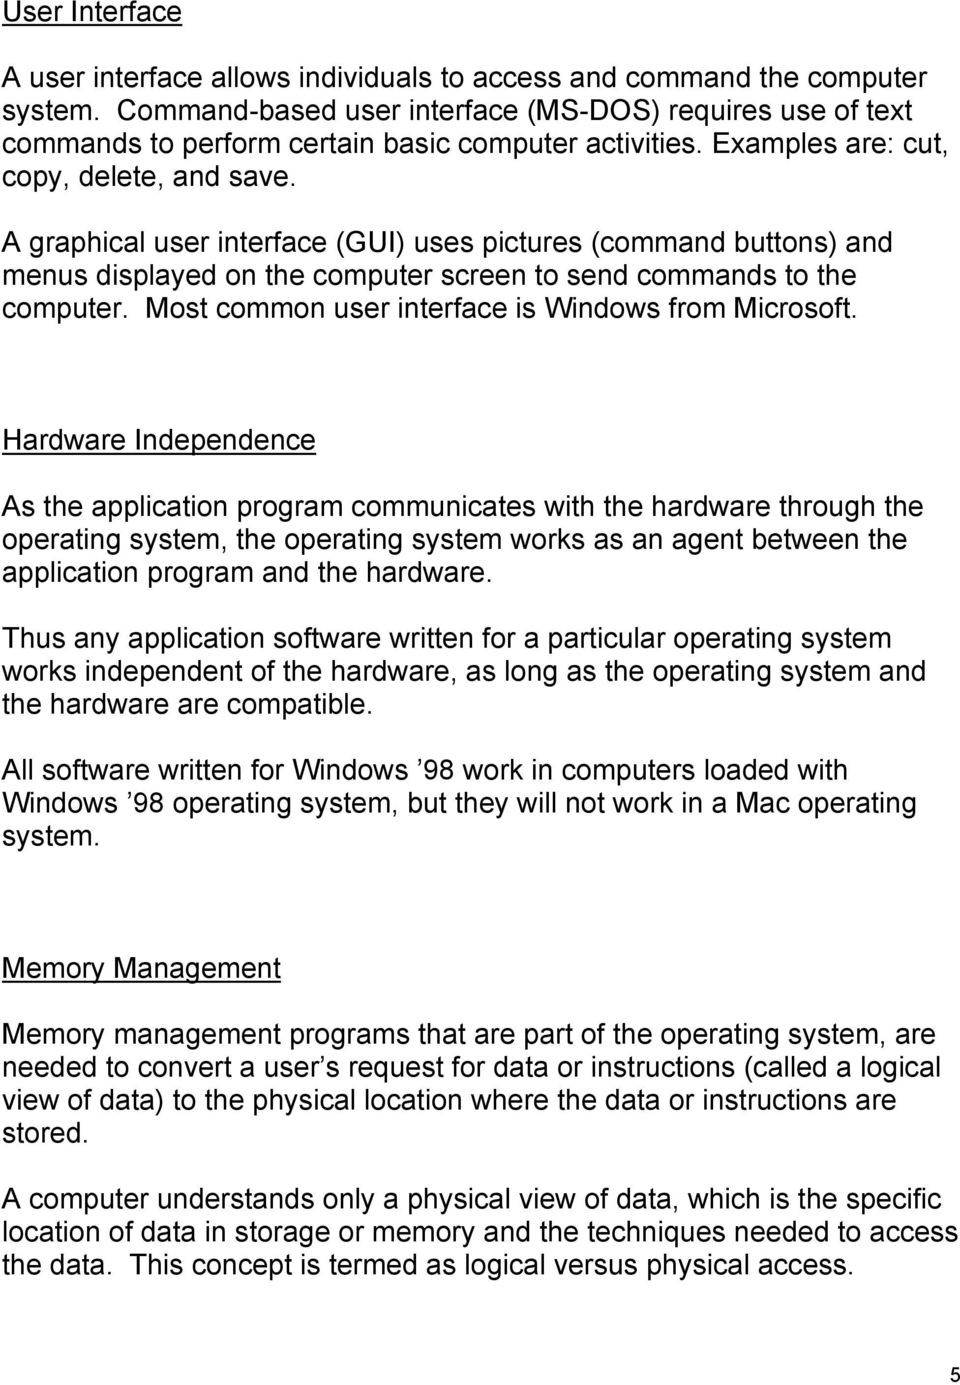 Software: Systems and Application Software - PDF